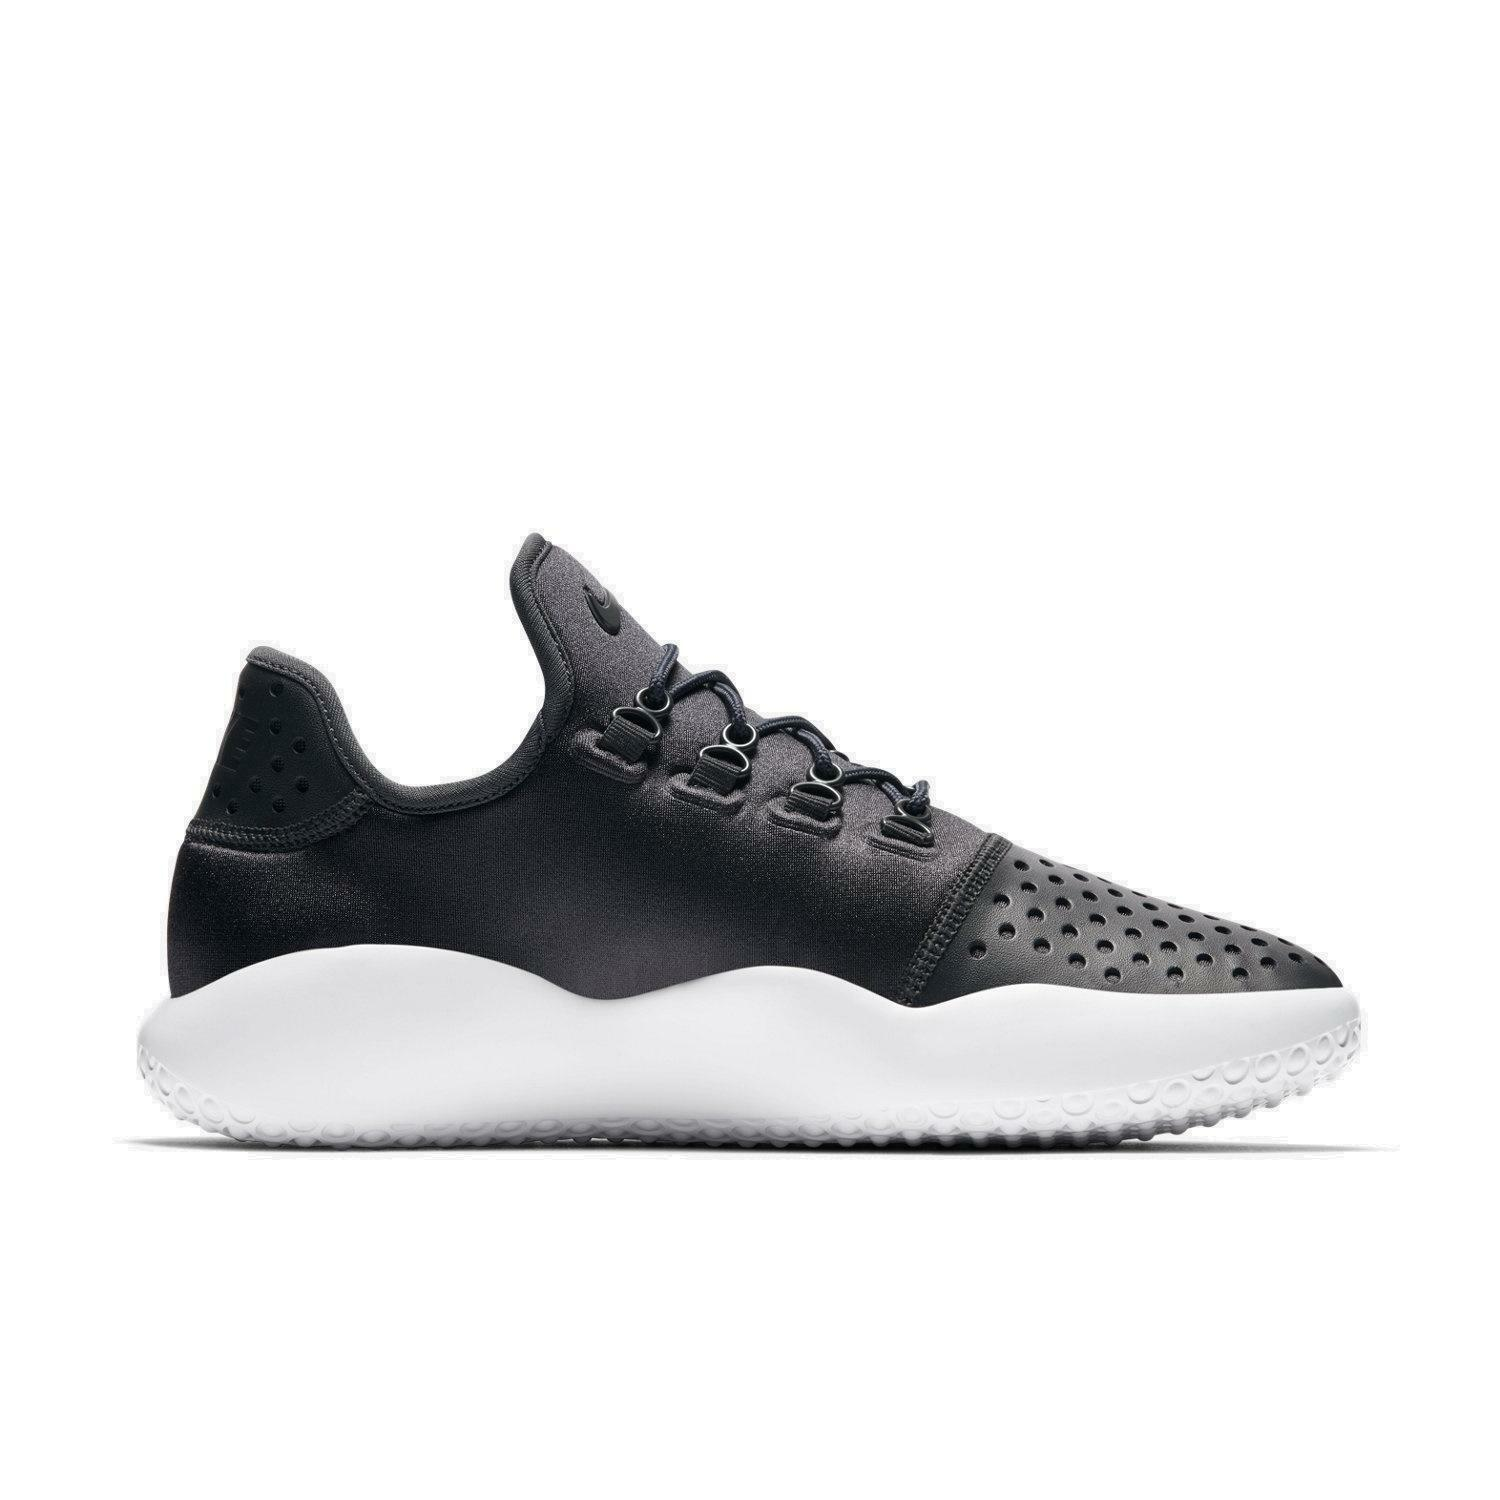 Mens NIKE FL-RUE Anthracite Trainers 896173 002